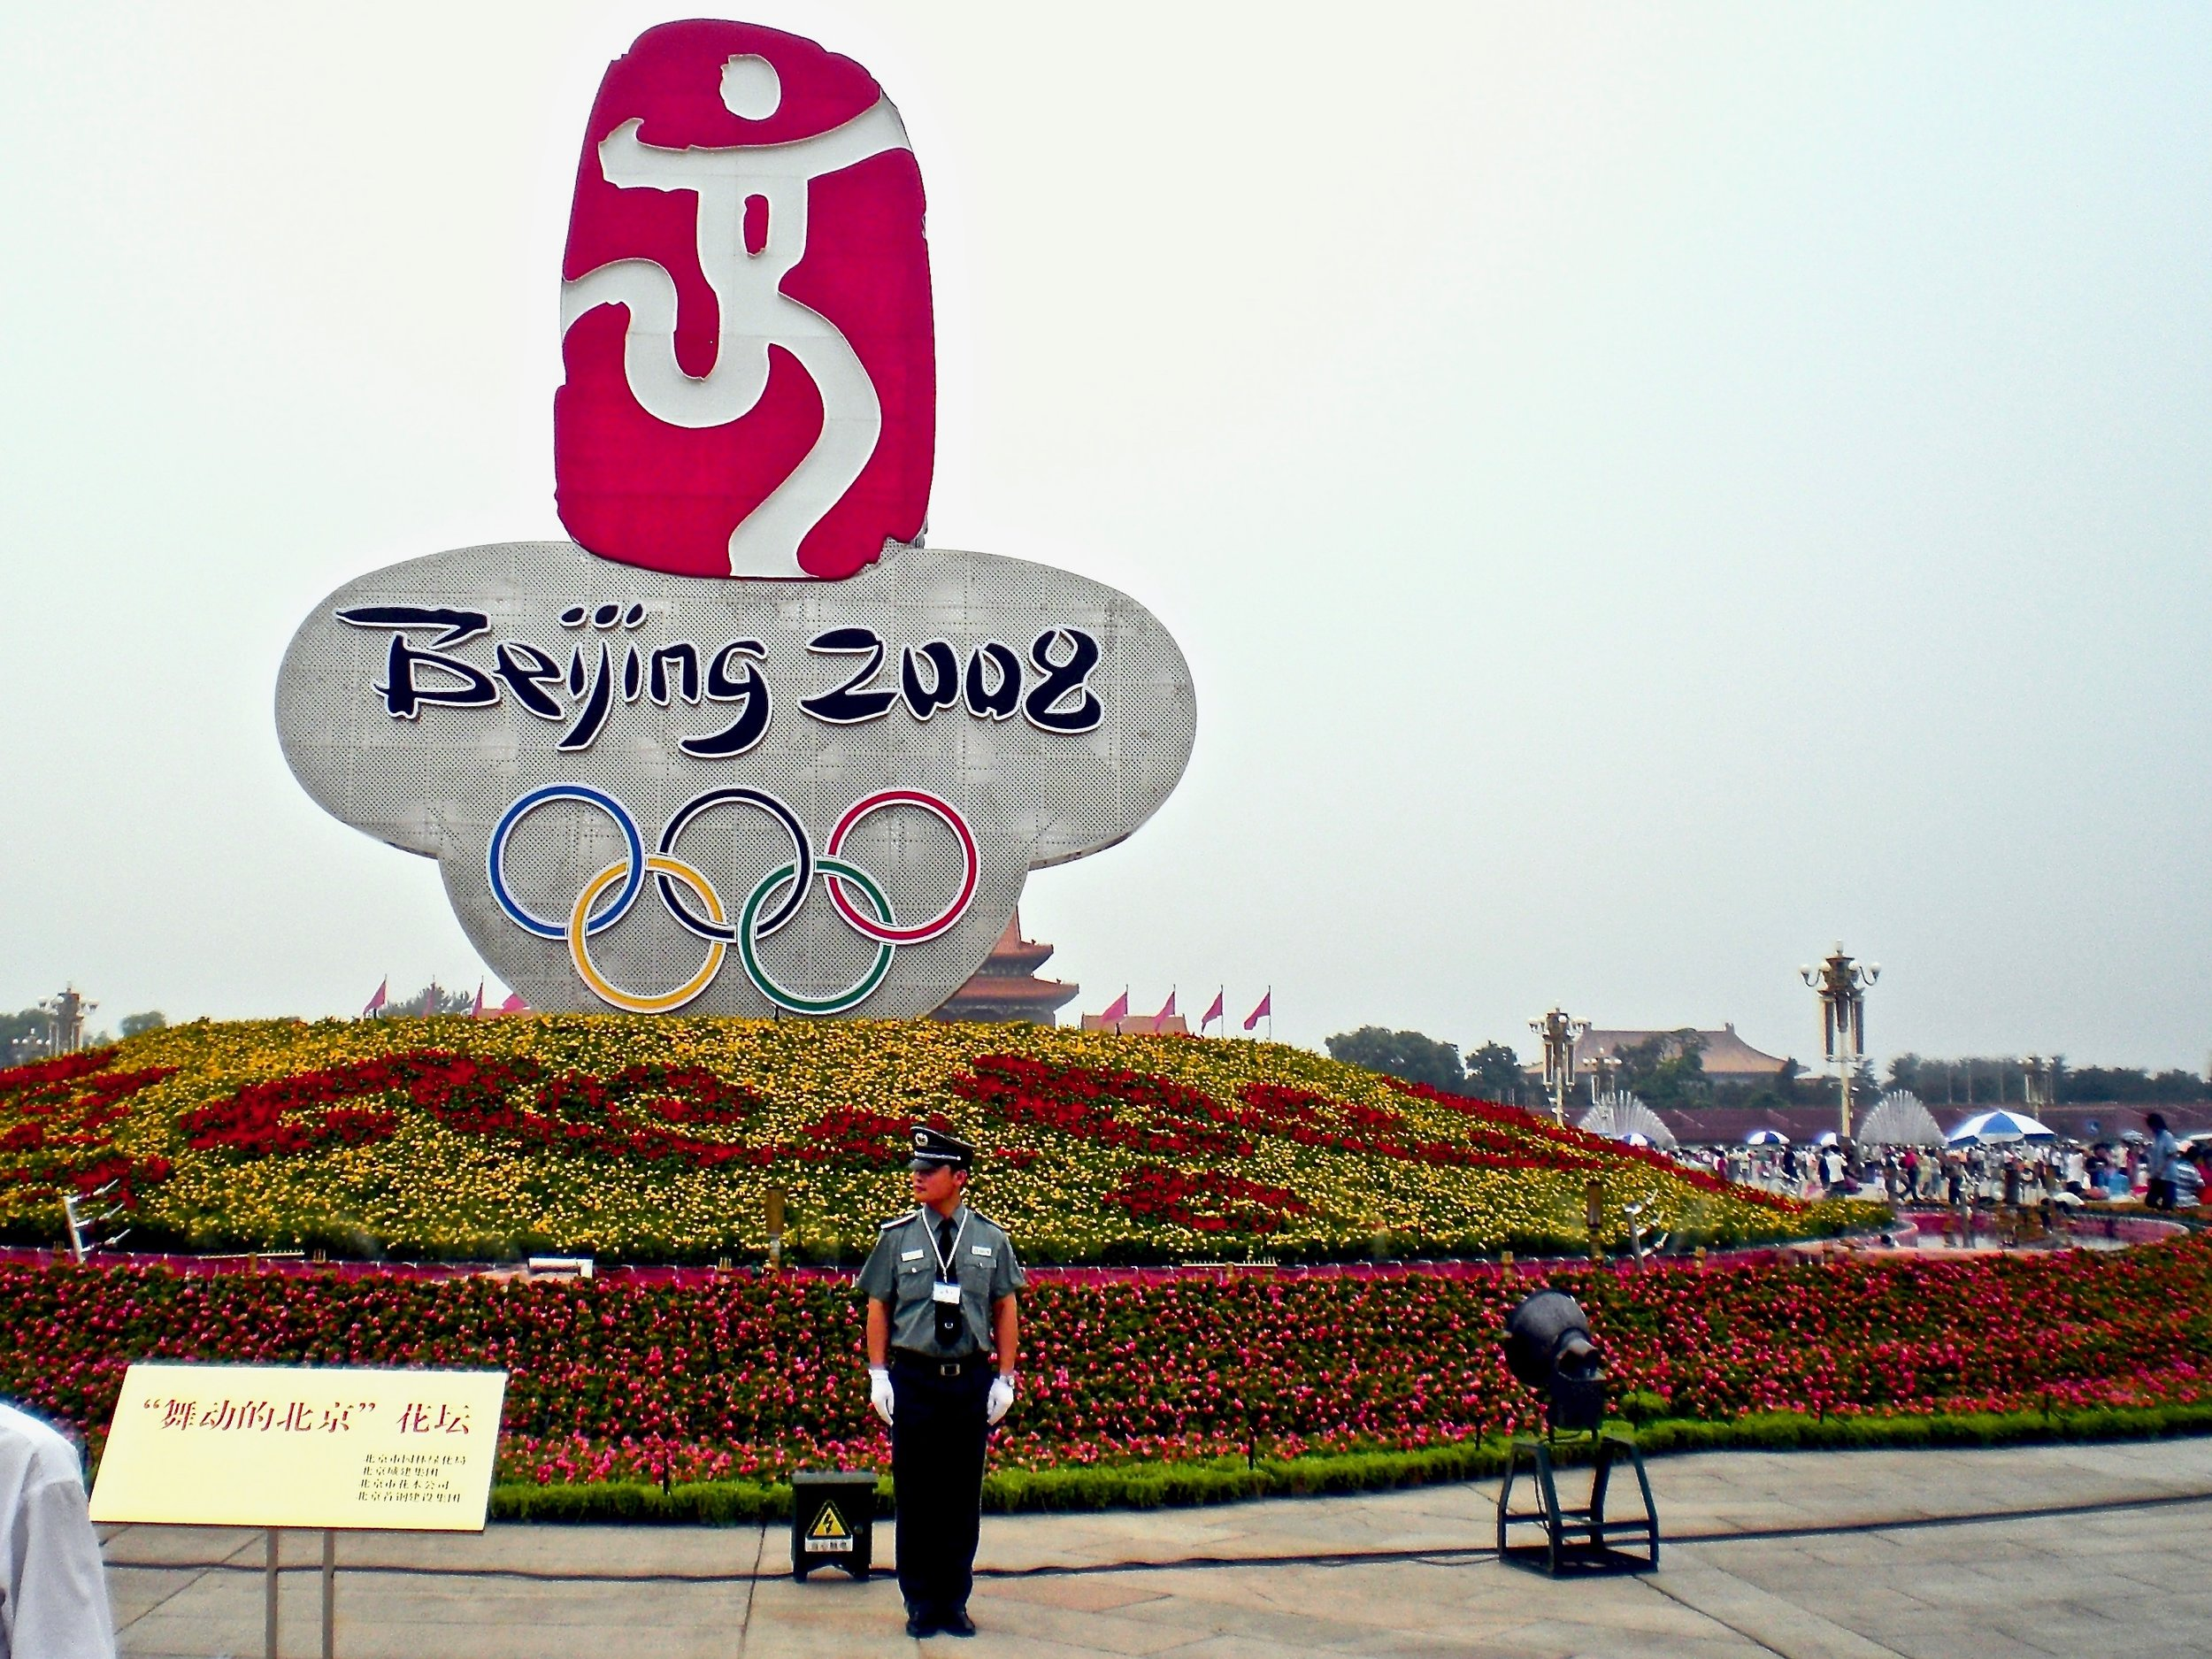 A guard in front of the logo for the 2008 Beijing Olympic Games on Tiananmen Square, Beijing, China. Photo: (C) Remko Tanis